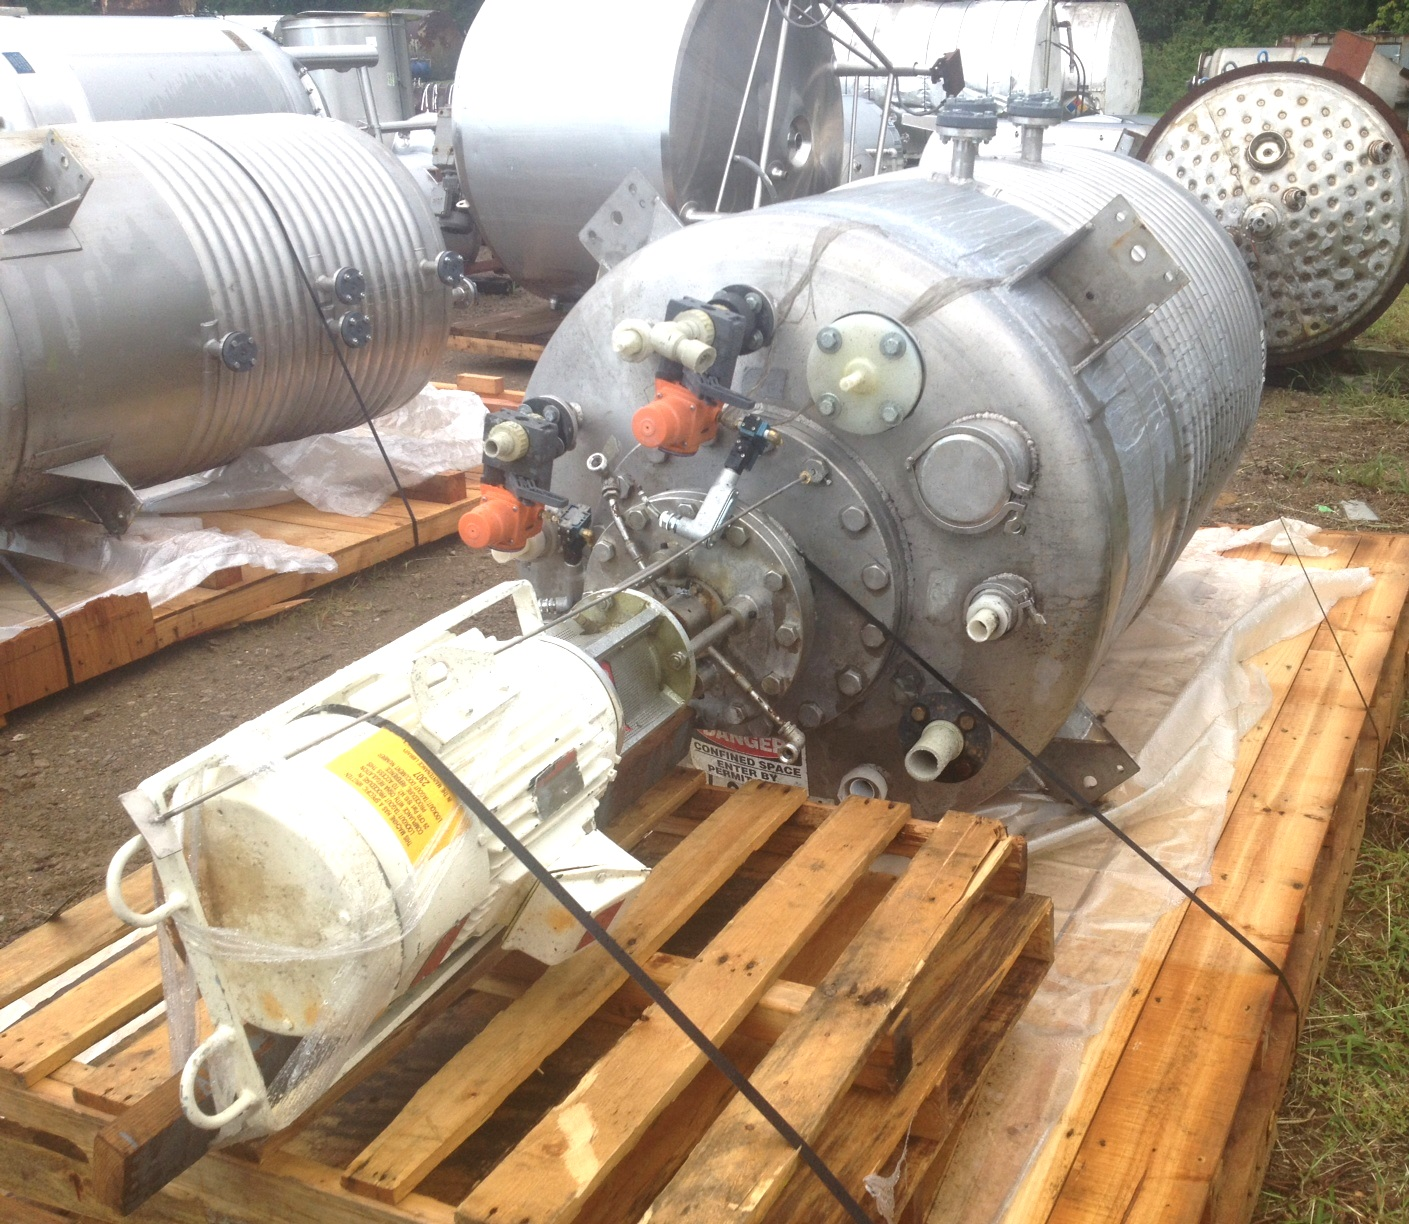 (2) EACH, 600 Gallon LEE 316L Stainless Reactor / Kettle with 1/2 Pipe jacket and High Speed Greerco  Disperser. Polished internal Rated 15/FV @ 100 Deg.F. Internal and 100 PSI @ 338 Deg.F on Jacket. Has Greerco model 4HRFM 96,  15 HP, 230/460 volt, 3525 RPM Disperser. 2.5\